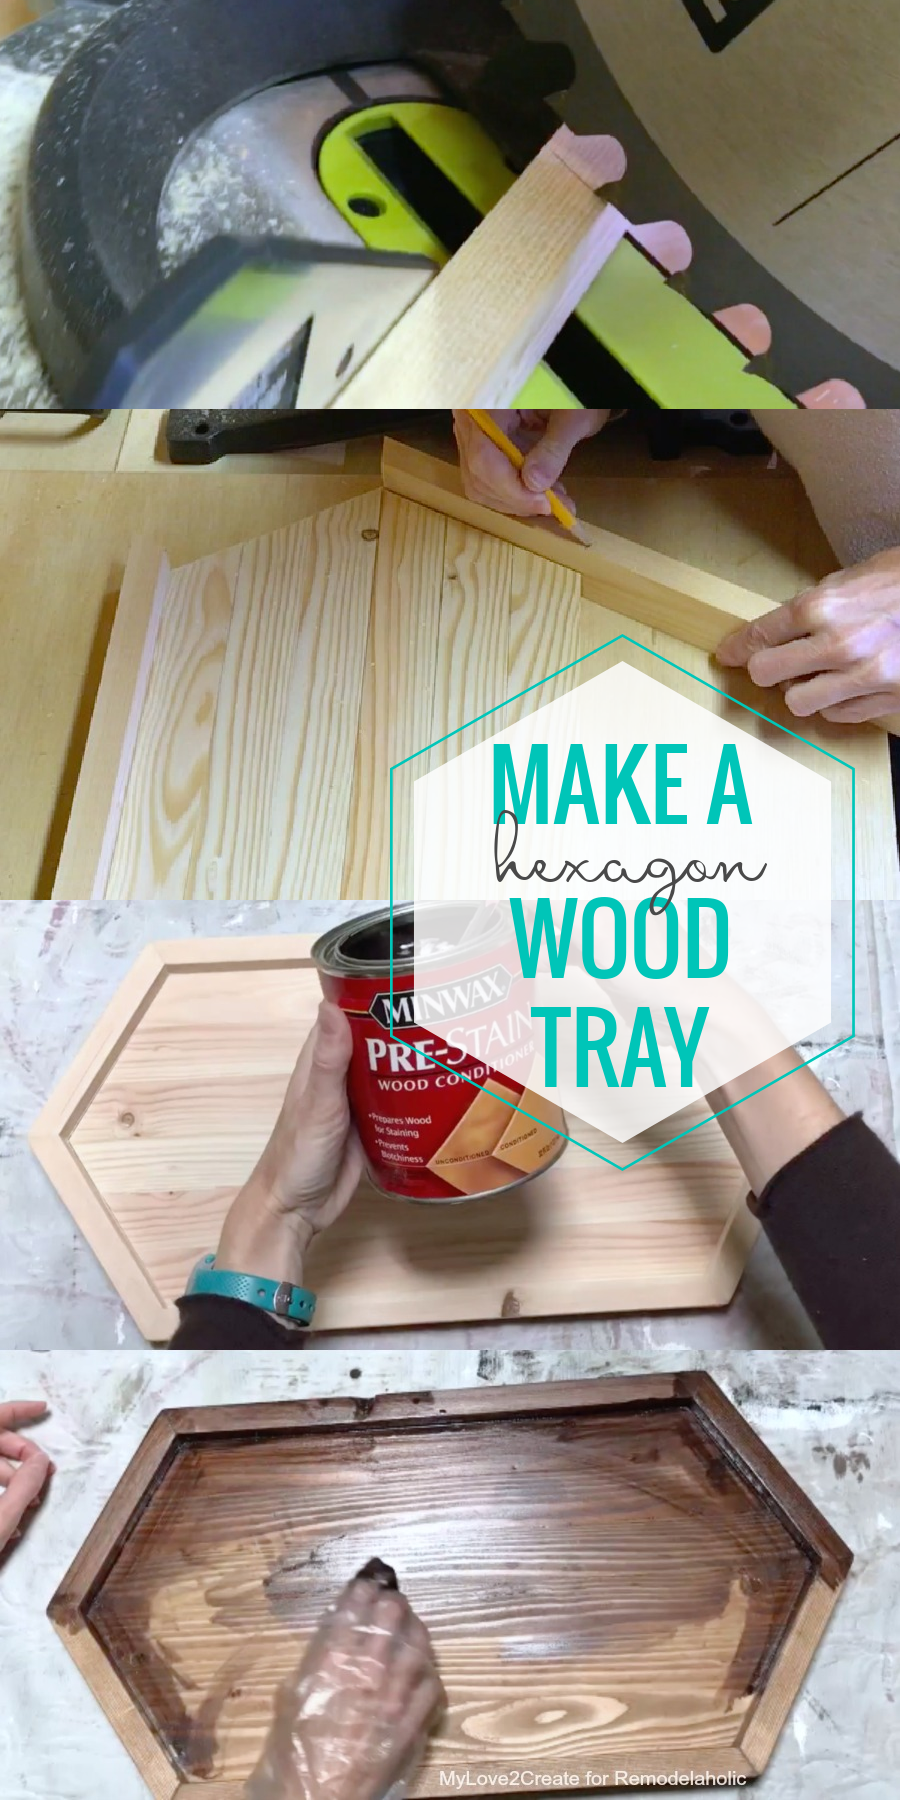 Diy Plans To Make A Long Wood Hexagon Tray For Serving Or Decor, Remodelaholic